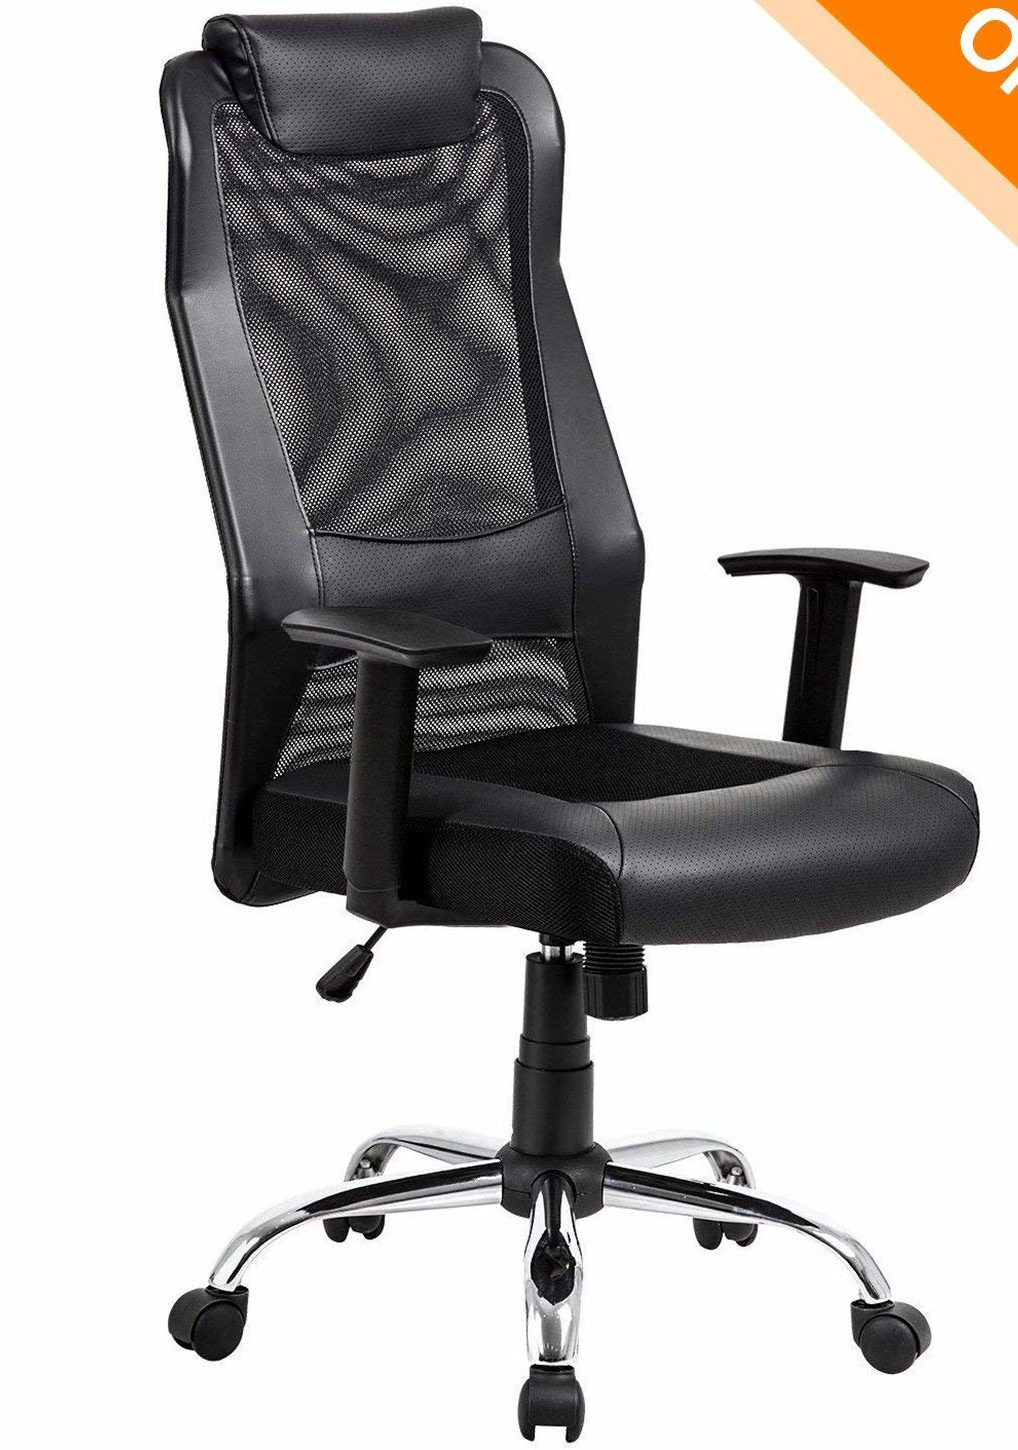 LCH High Back Mesh Office Chair by Kadirya · the best affordable ...  sc 1 st  My CMS & Todayu0027s Best Affordable Office Chair | Ranking Top Rated Affordable ...